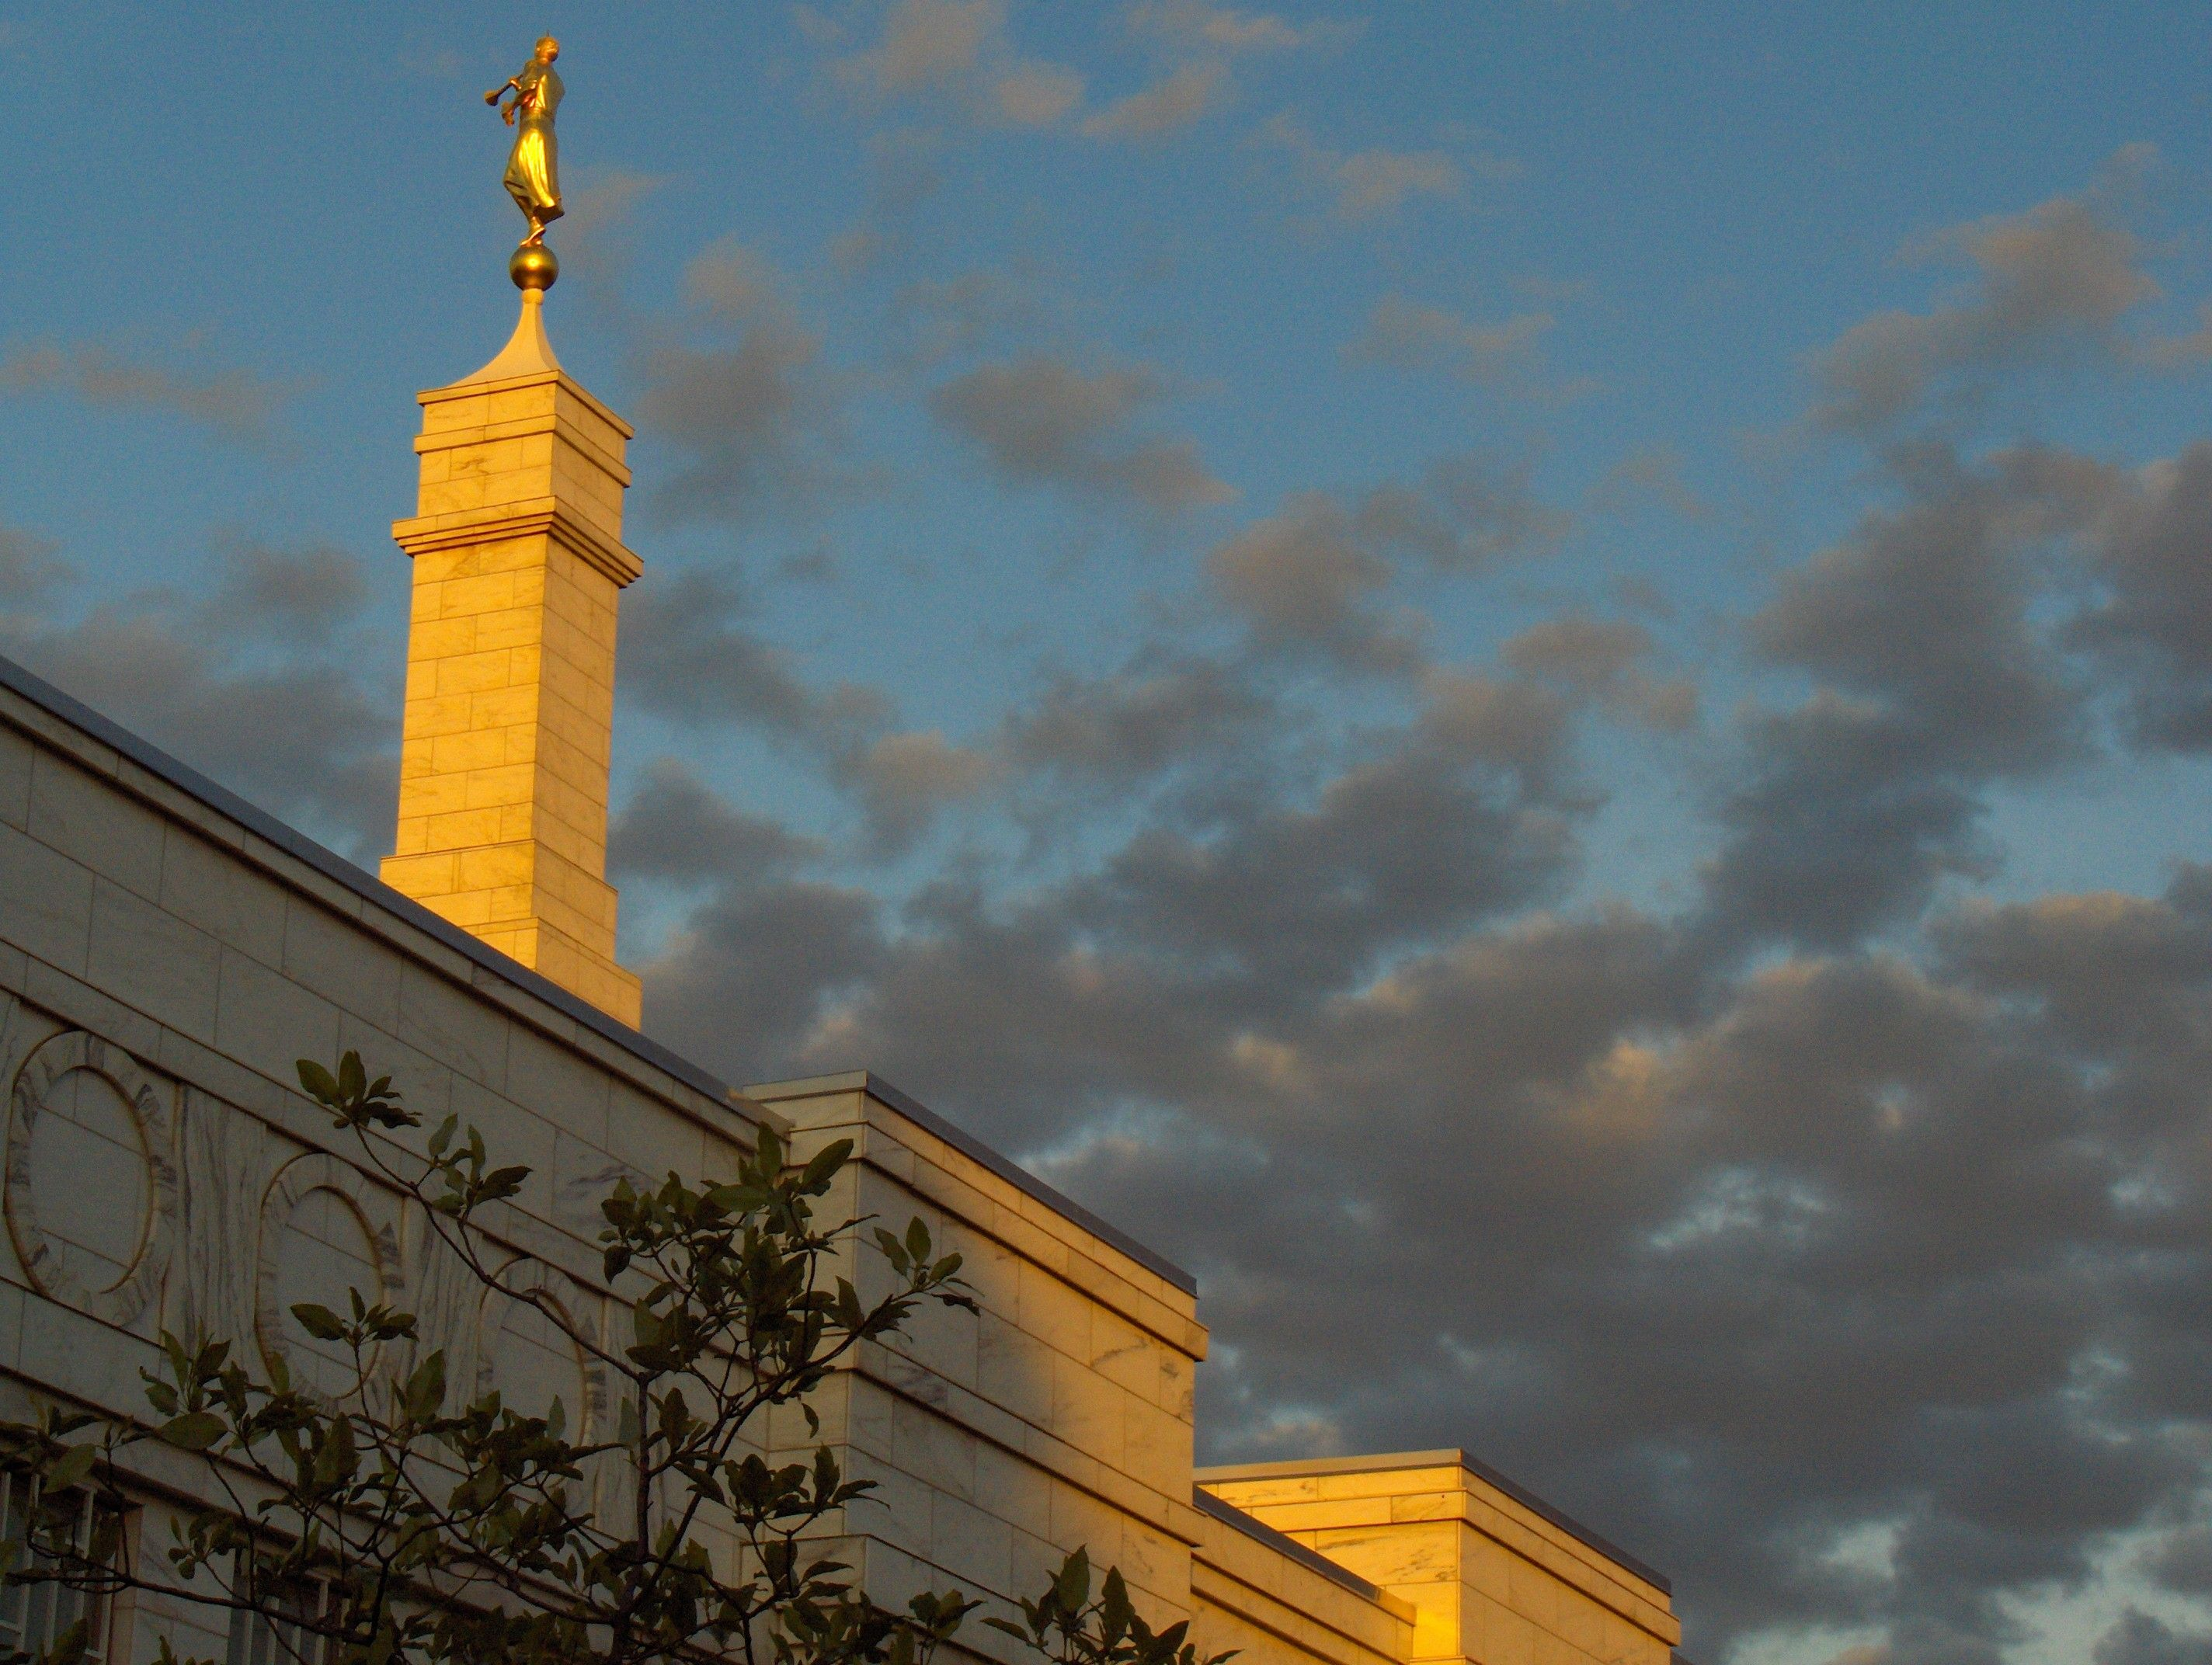 The angel Moroni on the Columbus Ohio Temple spire in the evening.